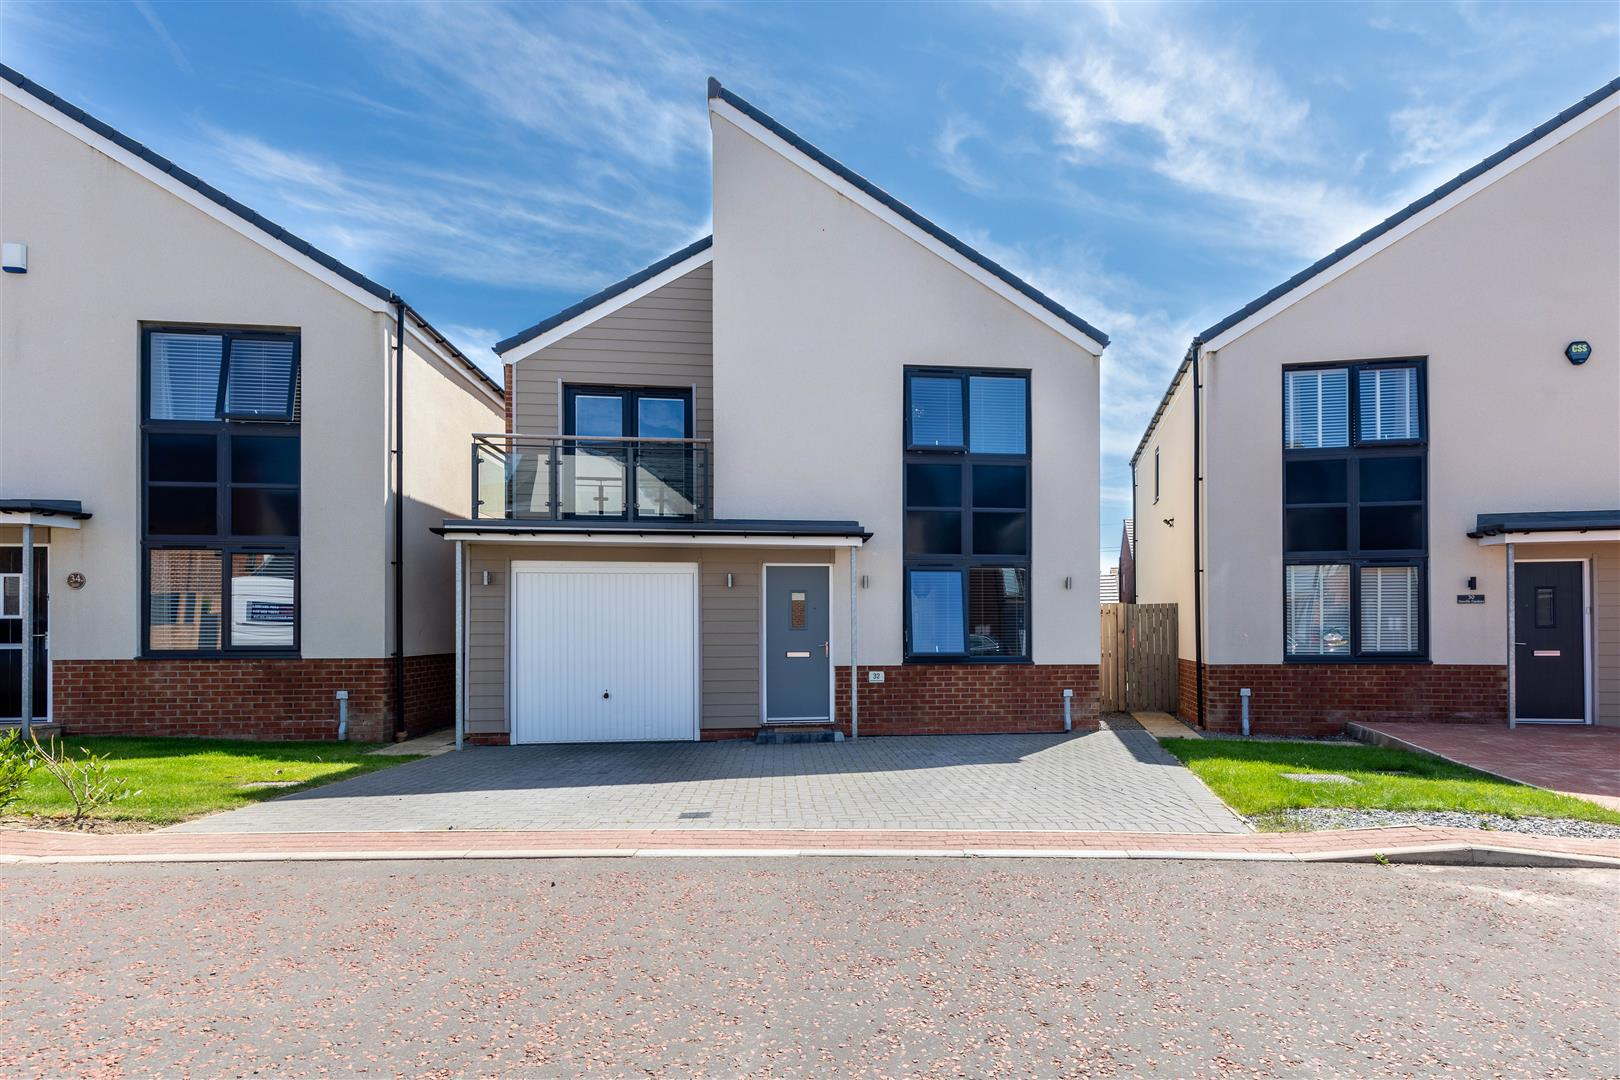 4 bed detached house for sale in Great Park, NE13 9DN  - Property Image 1